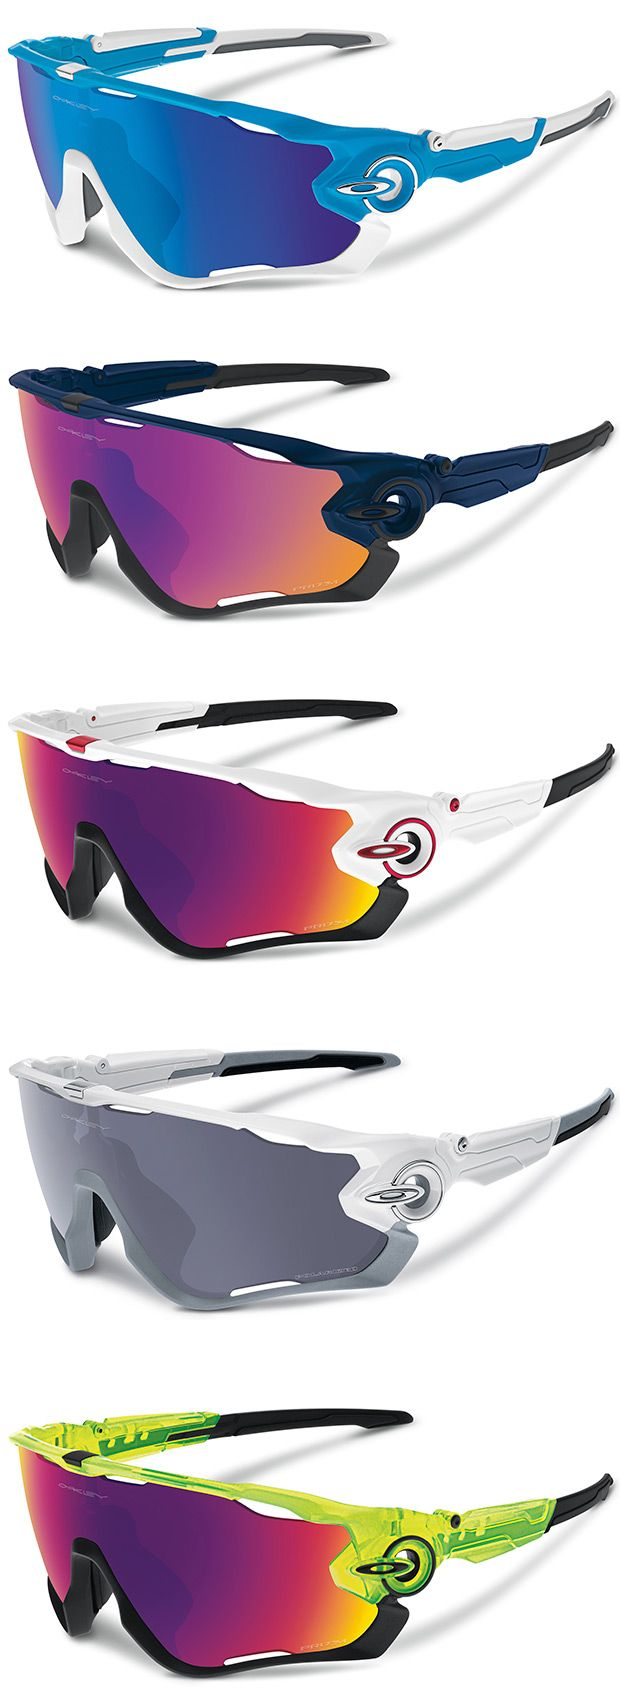 Cheap Oakley Sunglasses Review